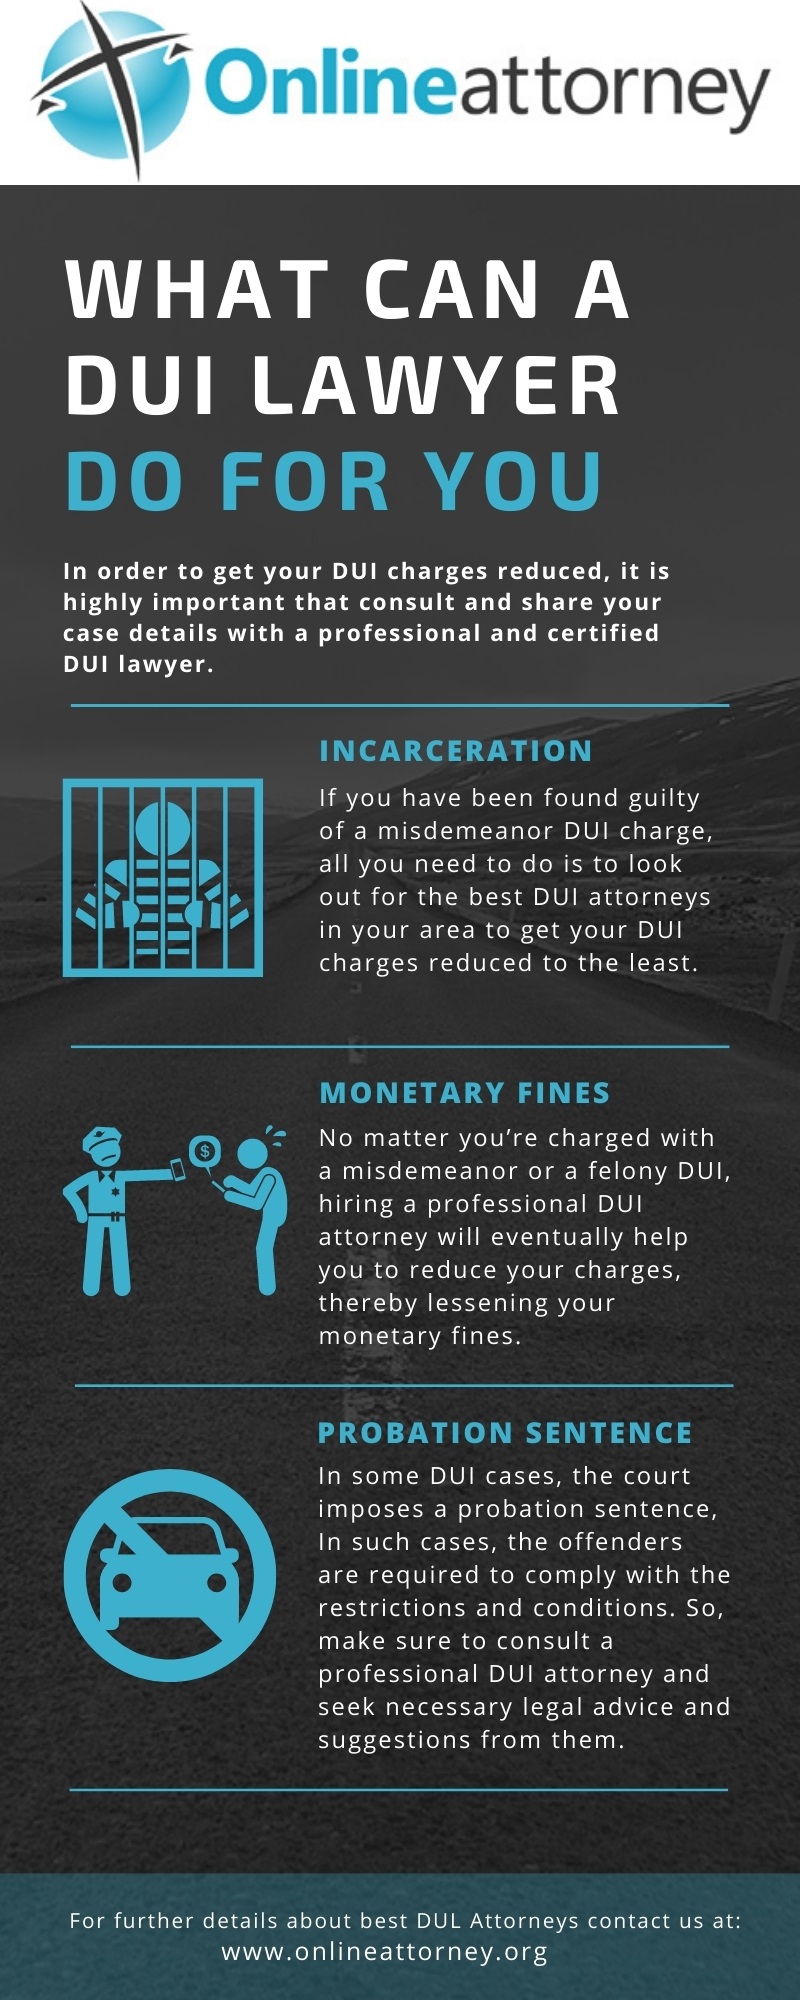 What can a DUI lawyer do for you